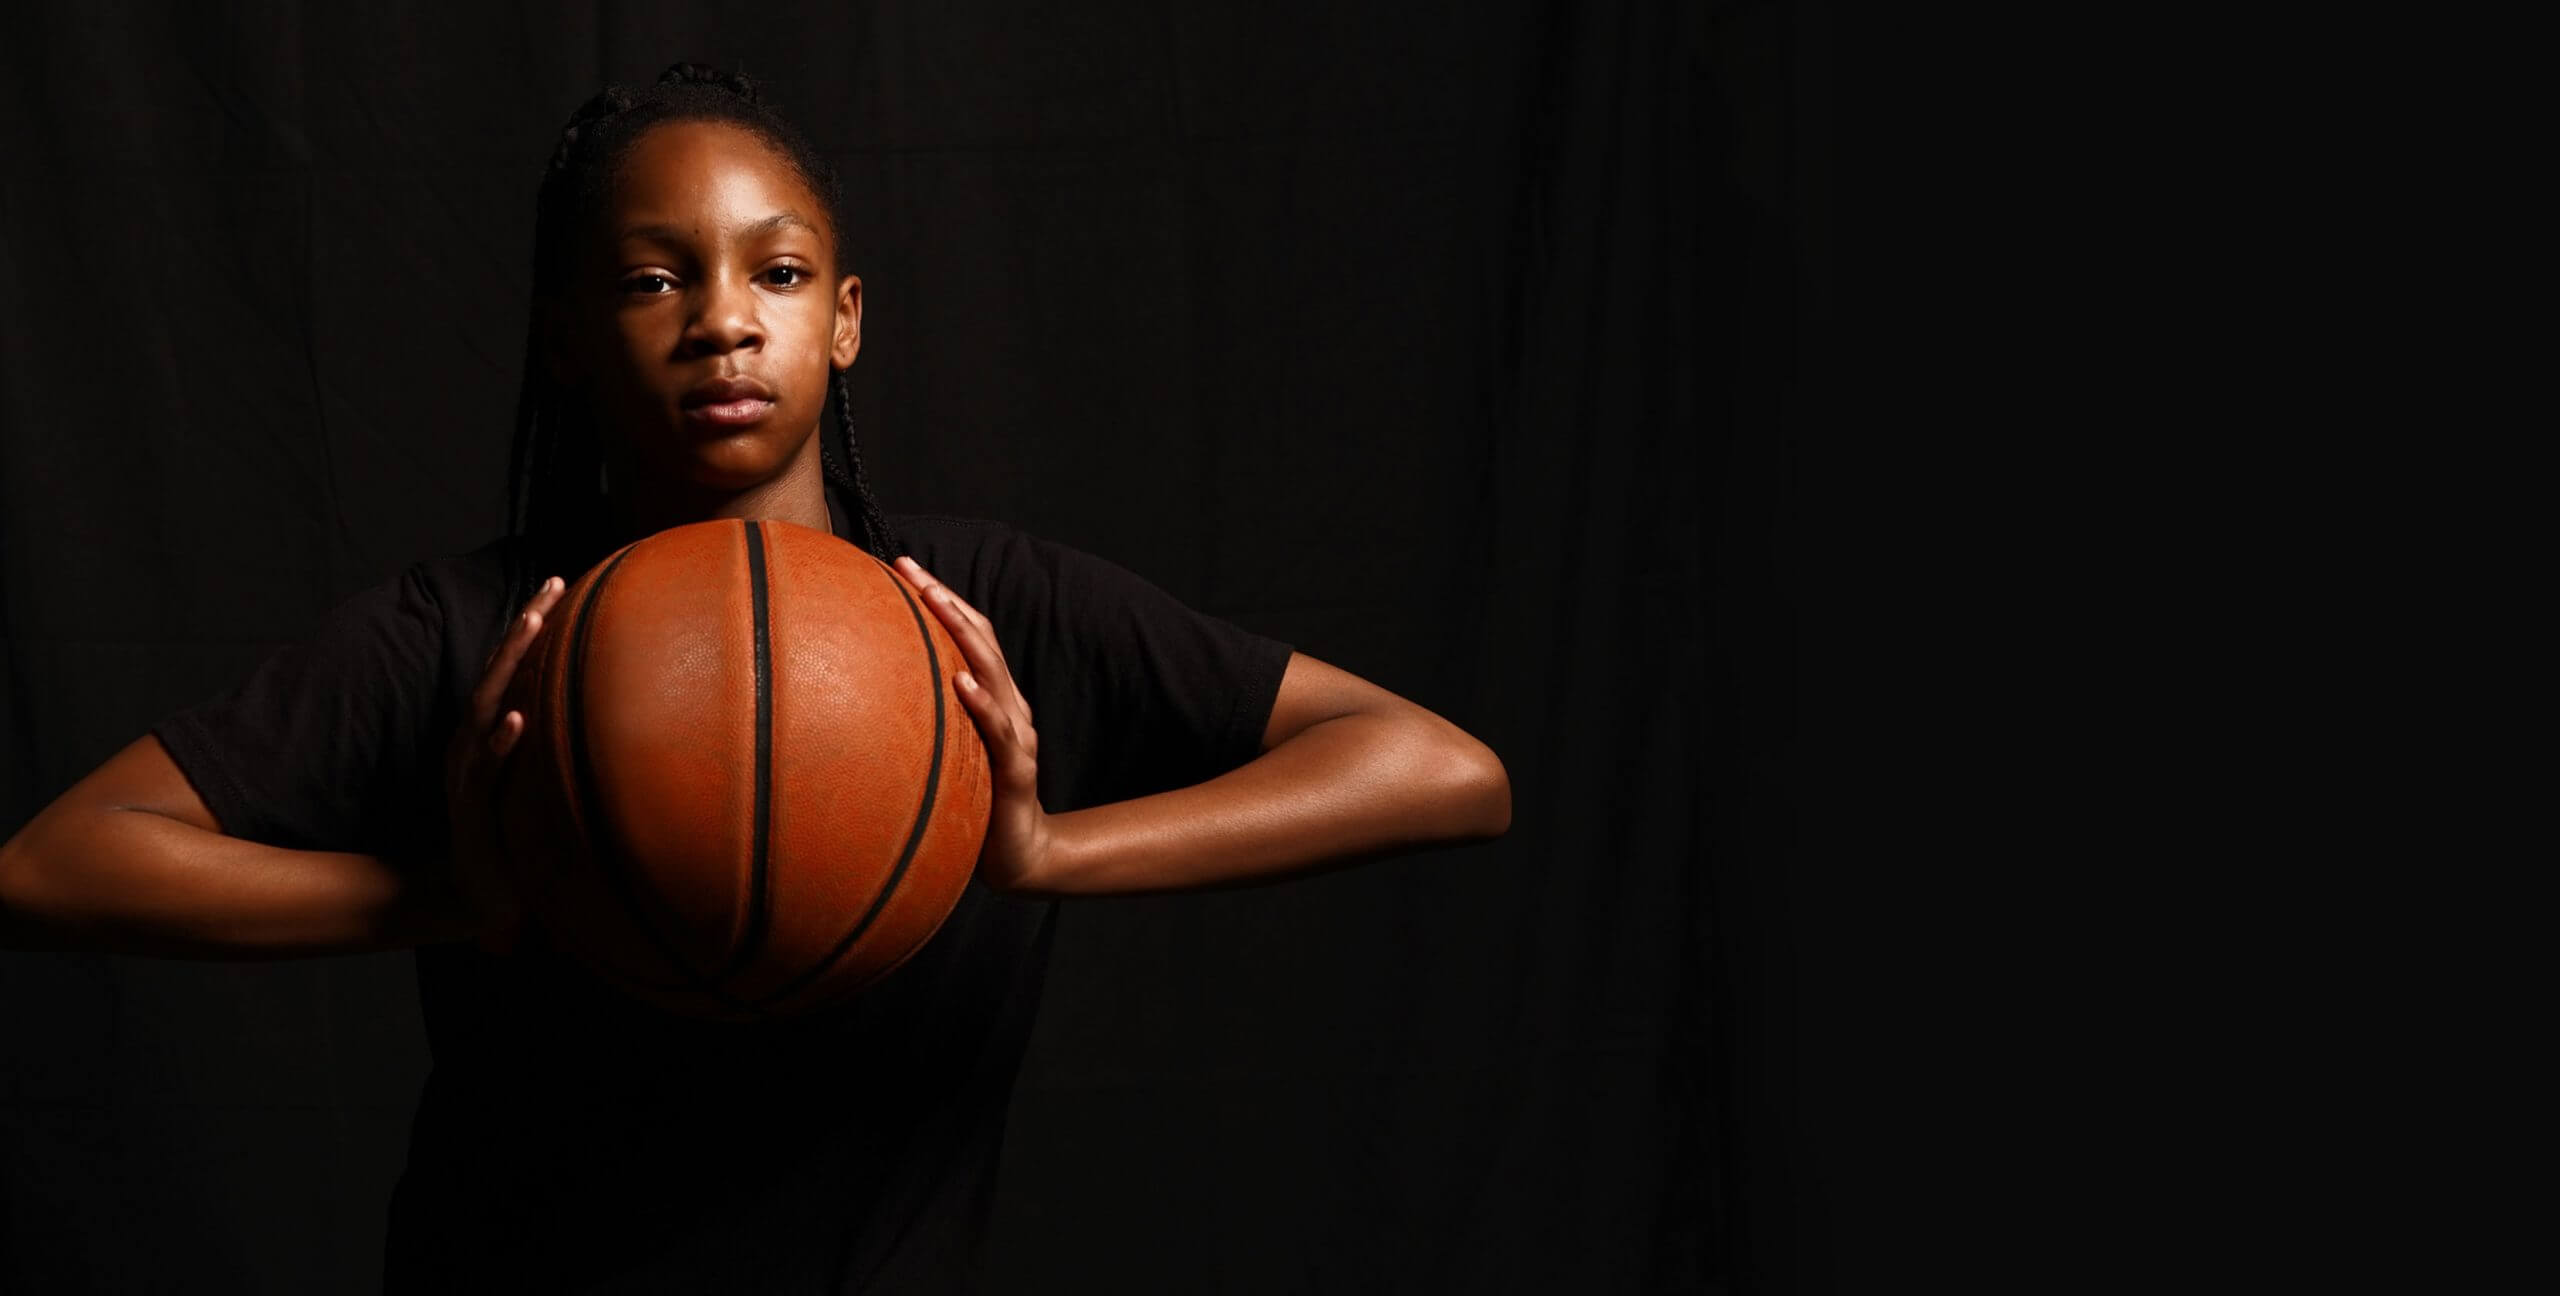 Young girl holding a basketball. Athletes perform on the field of play.